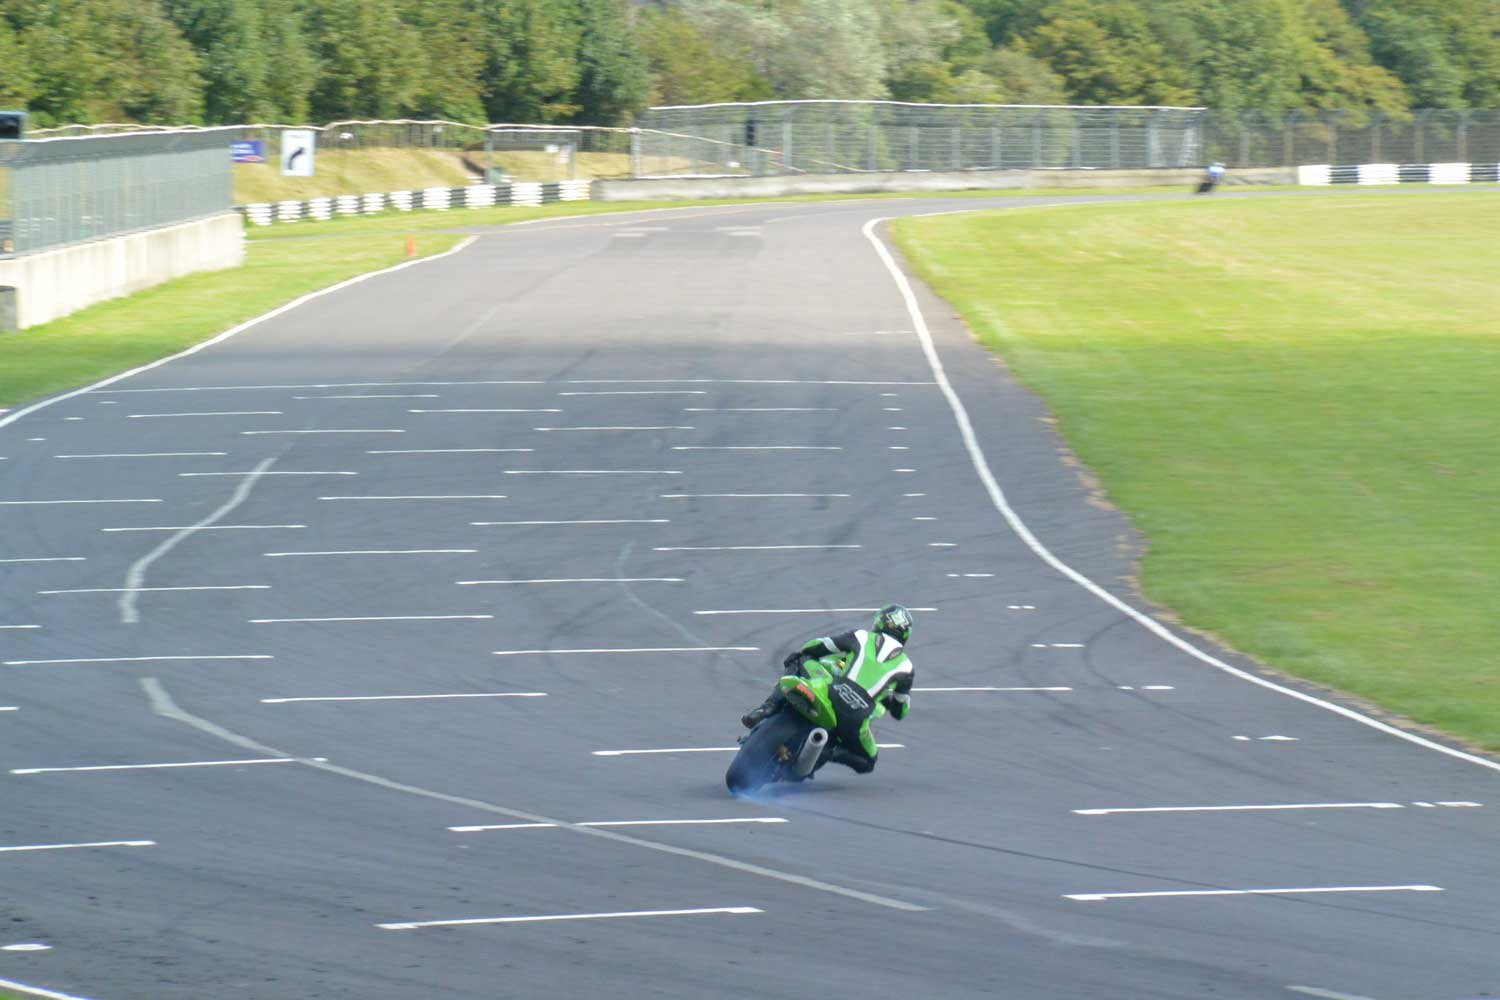 R&G crash protection zx10r 004